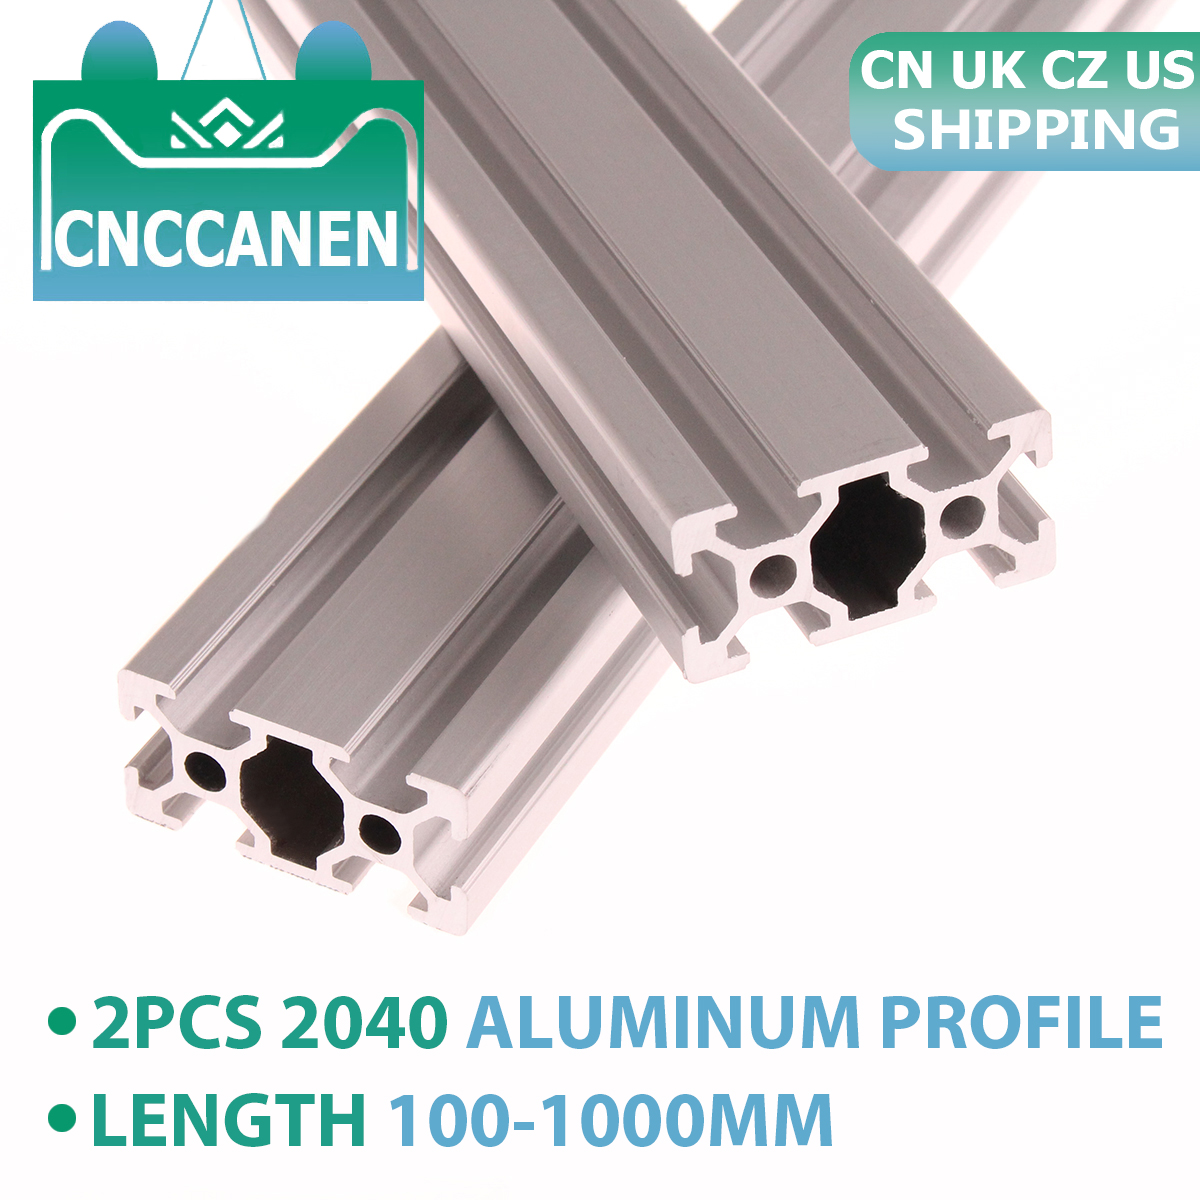 2PCS <font><b>2040</b></font> Aluminum Profile <font><b>Extrusion</b></font> European Standard Linear Rail Aluminum Profile <font><b>2040</b></font> <font><b>Extrusion</b></font> <font><b>2040</b></font> for CNC 3D Printer Parts image